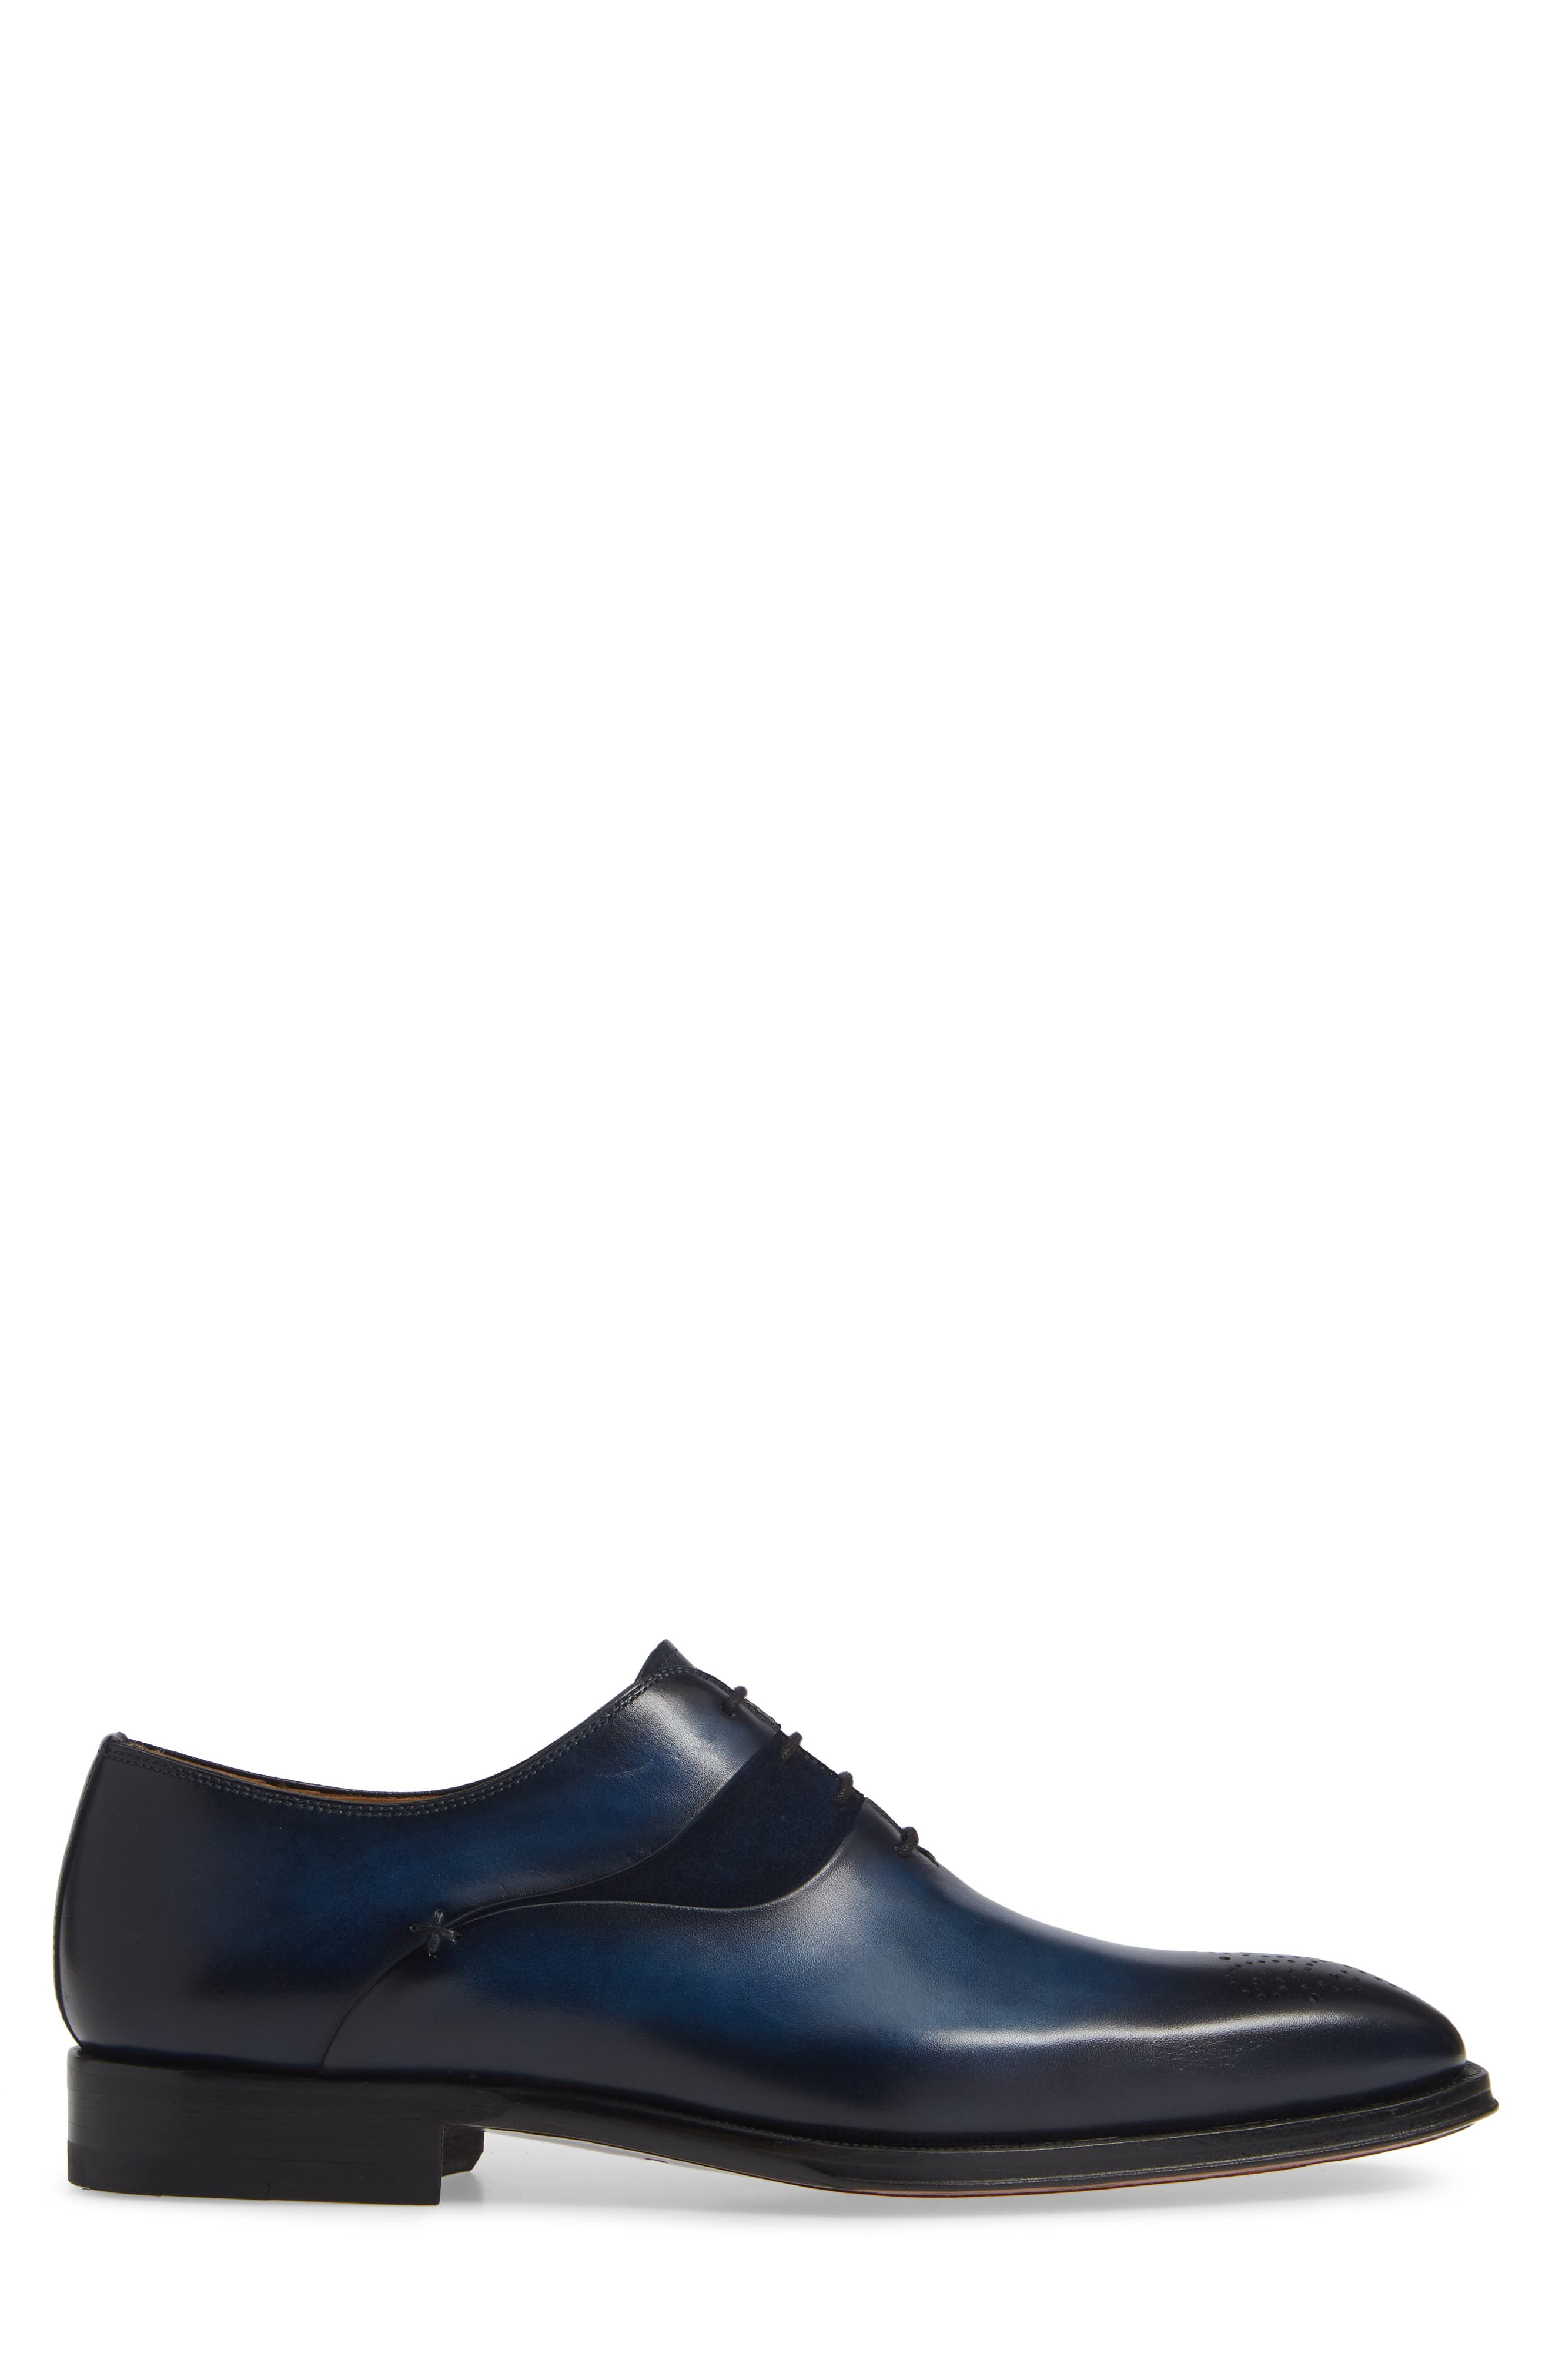 Hector Plain Toe Oxford,                             Alternate thumbnail 3, color,                             NAVY LEATHER